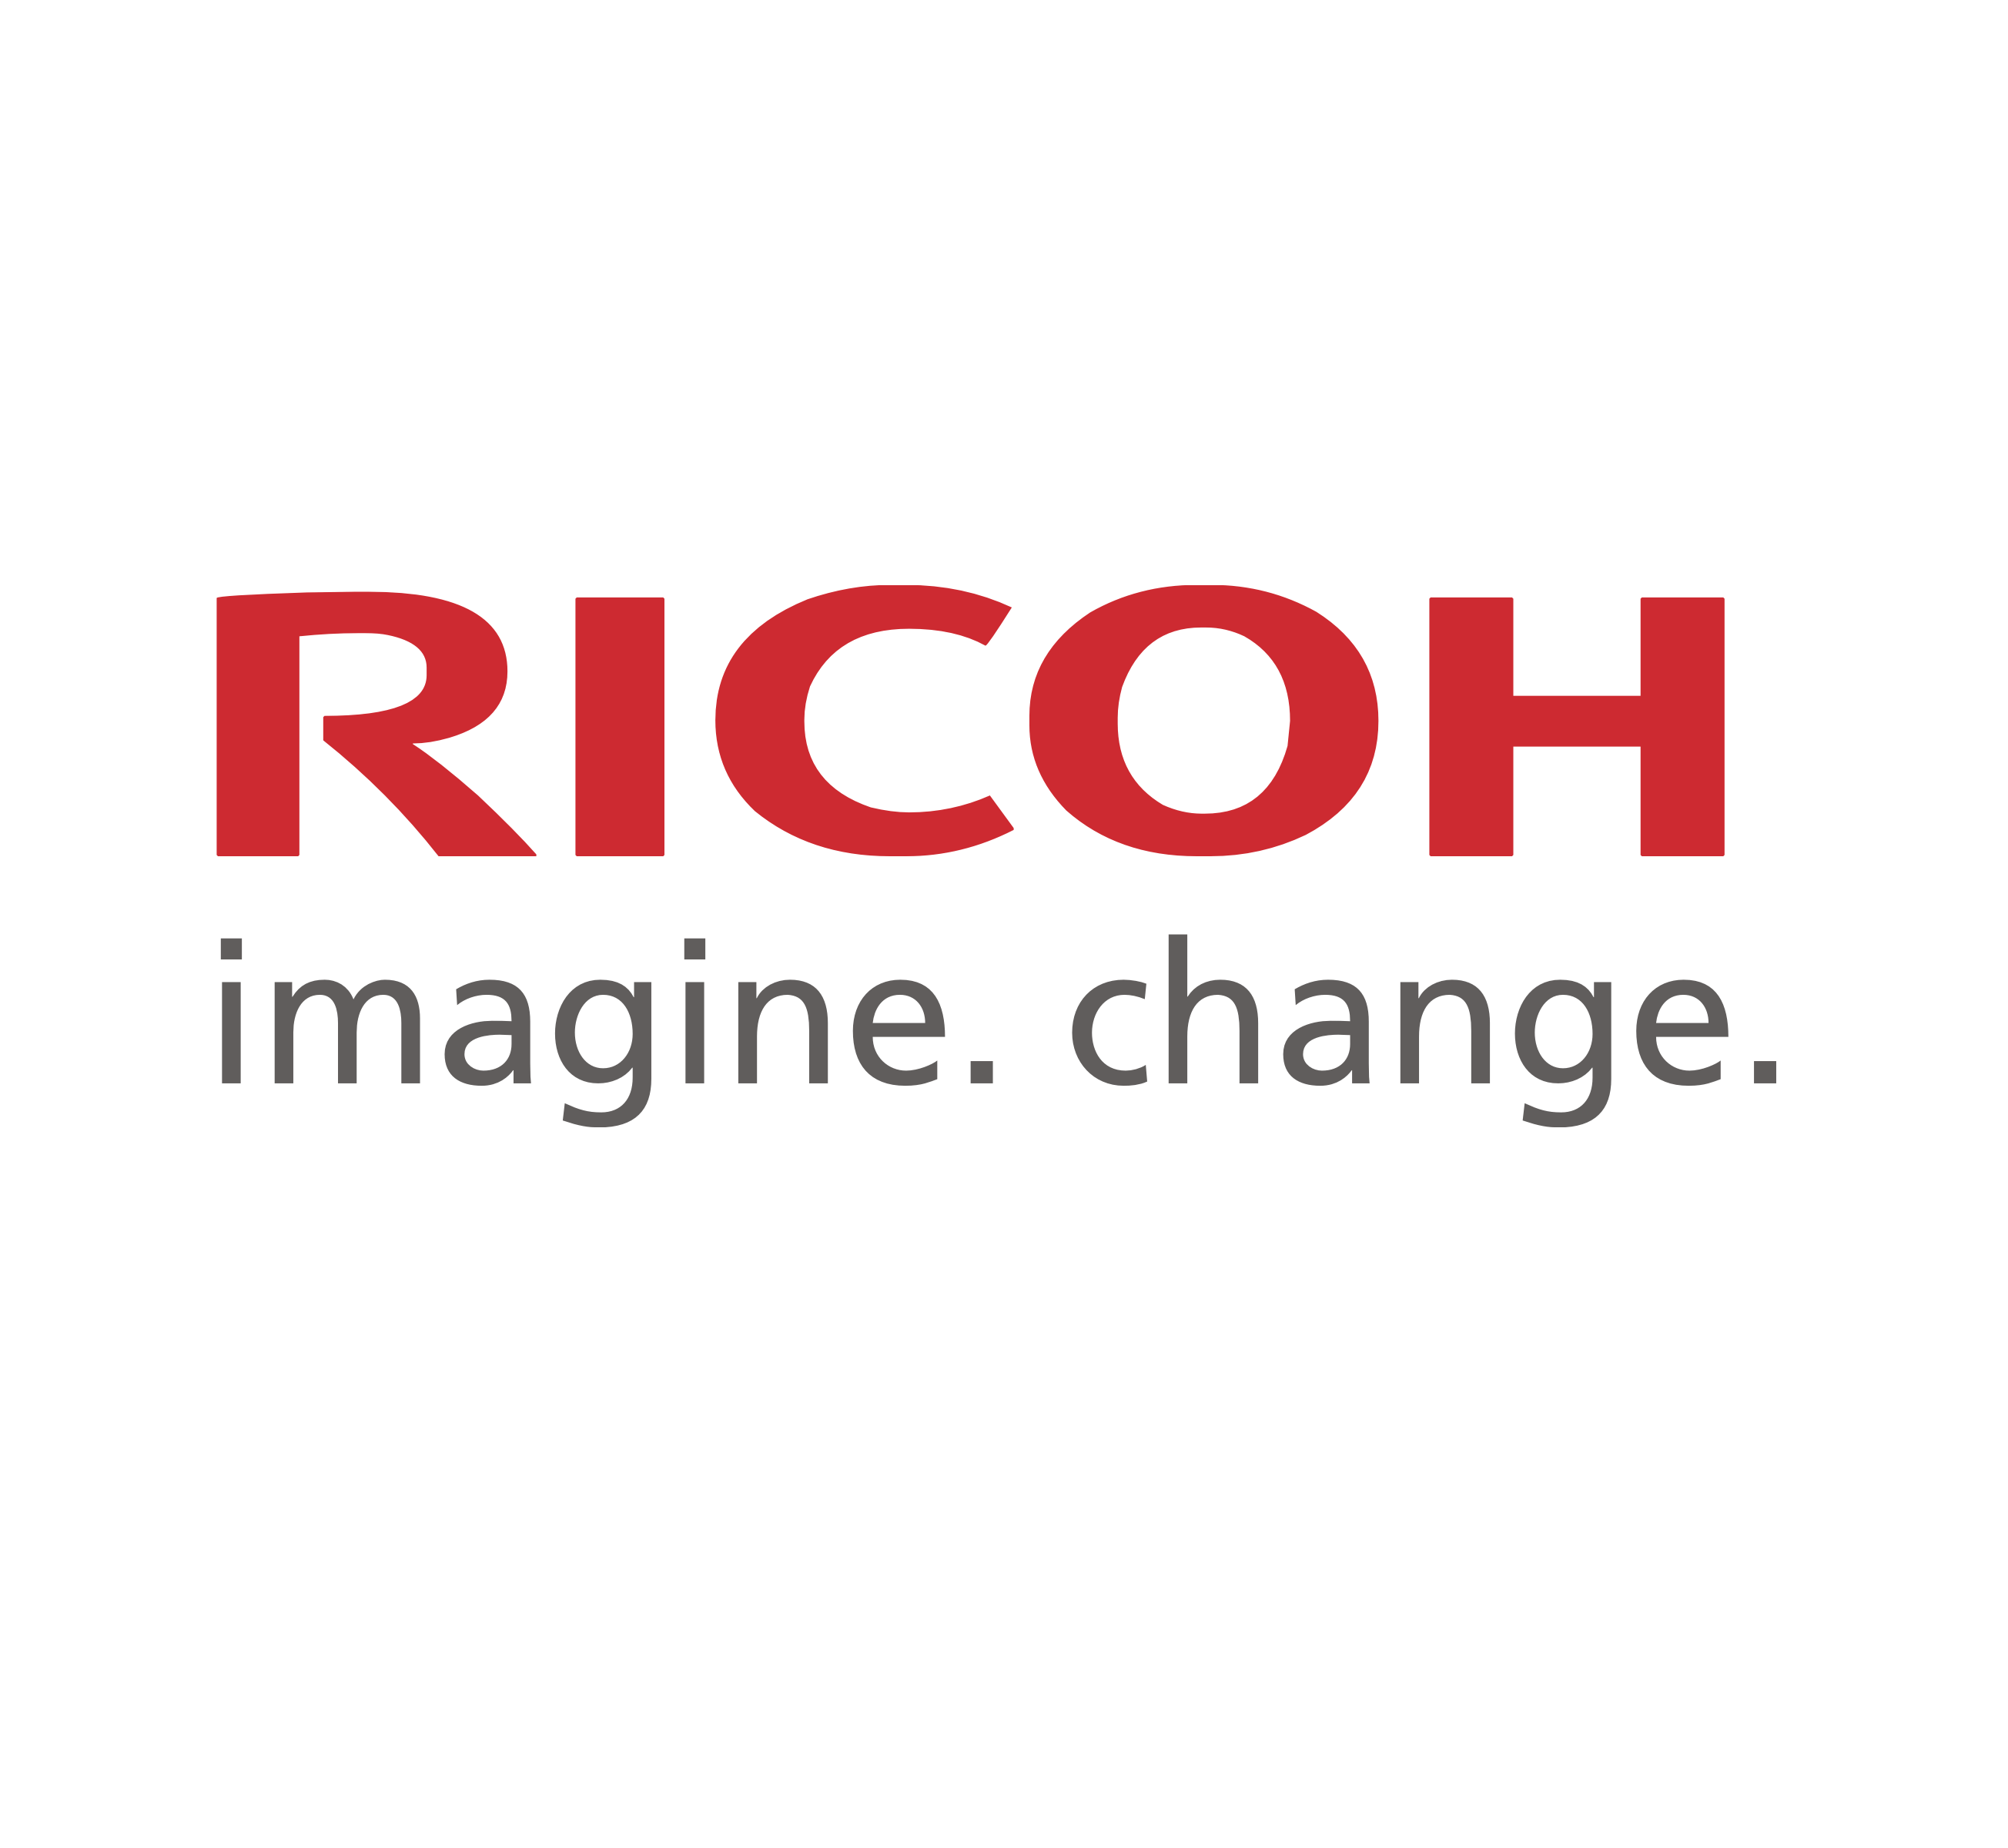 Ricoh Logo - RICOH' logo | Products | 3D Printing, Prints ve Marketing communications